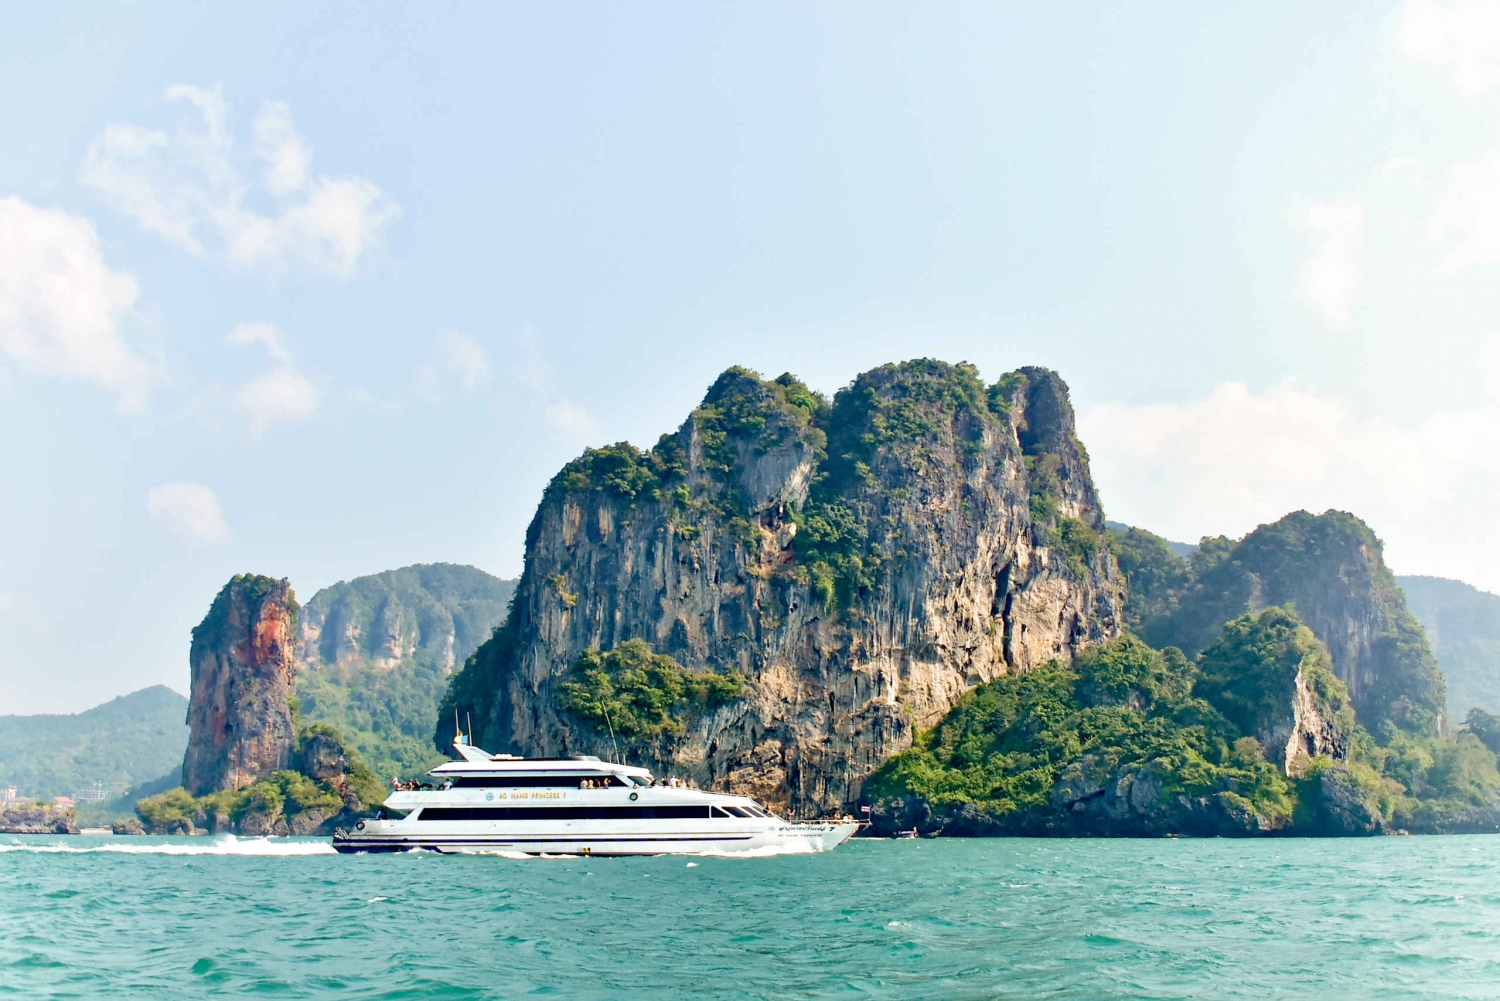 Ferry Transfer to Railay from Phuket, Phi Phi and Koh Lanta